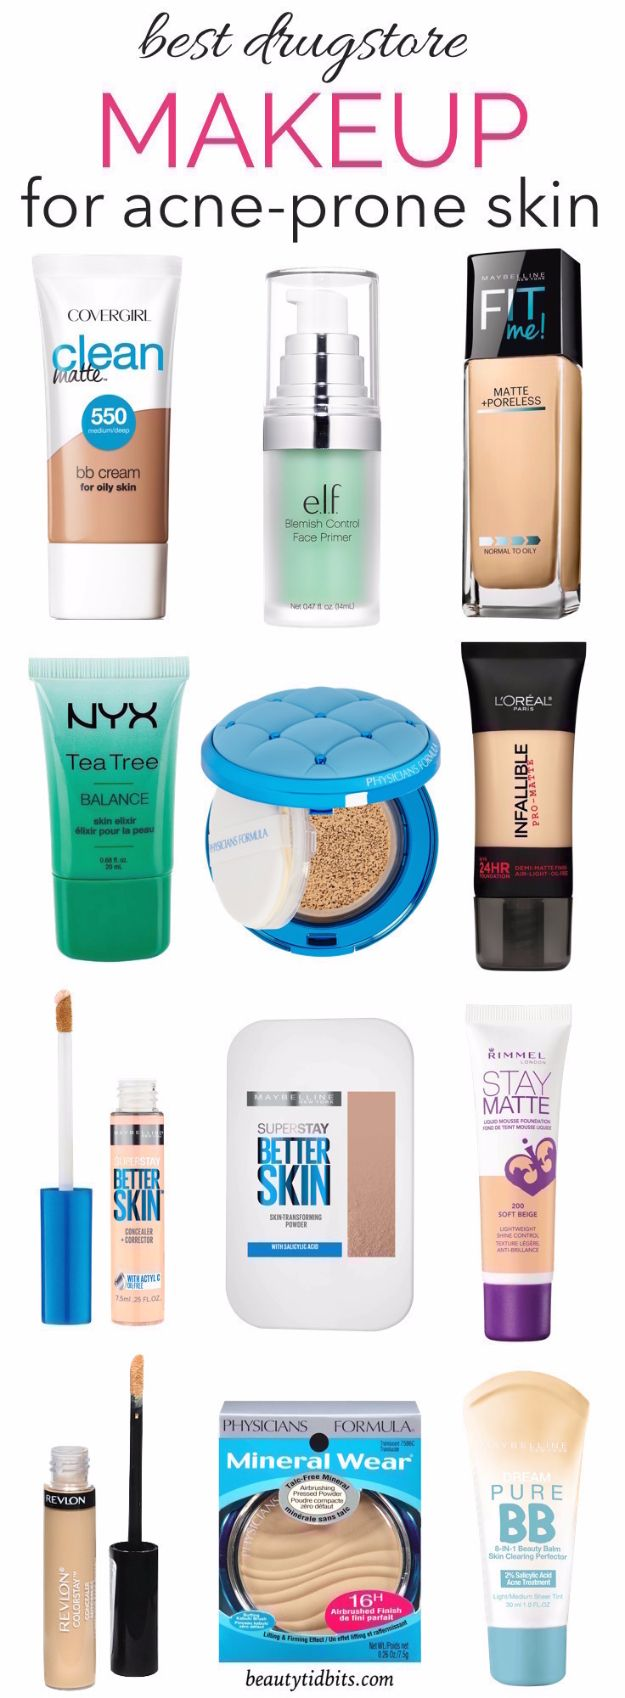 What are some highly rated face primers?